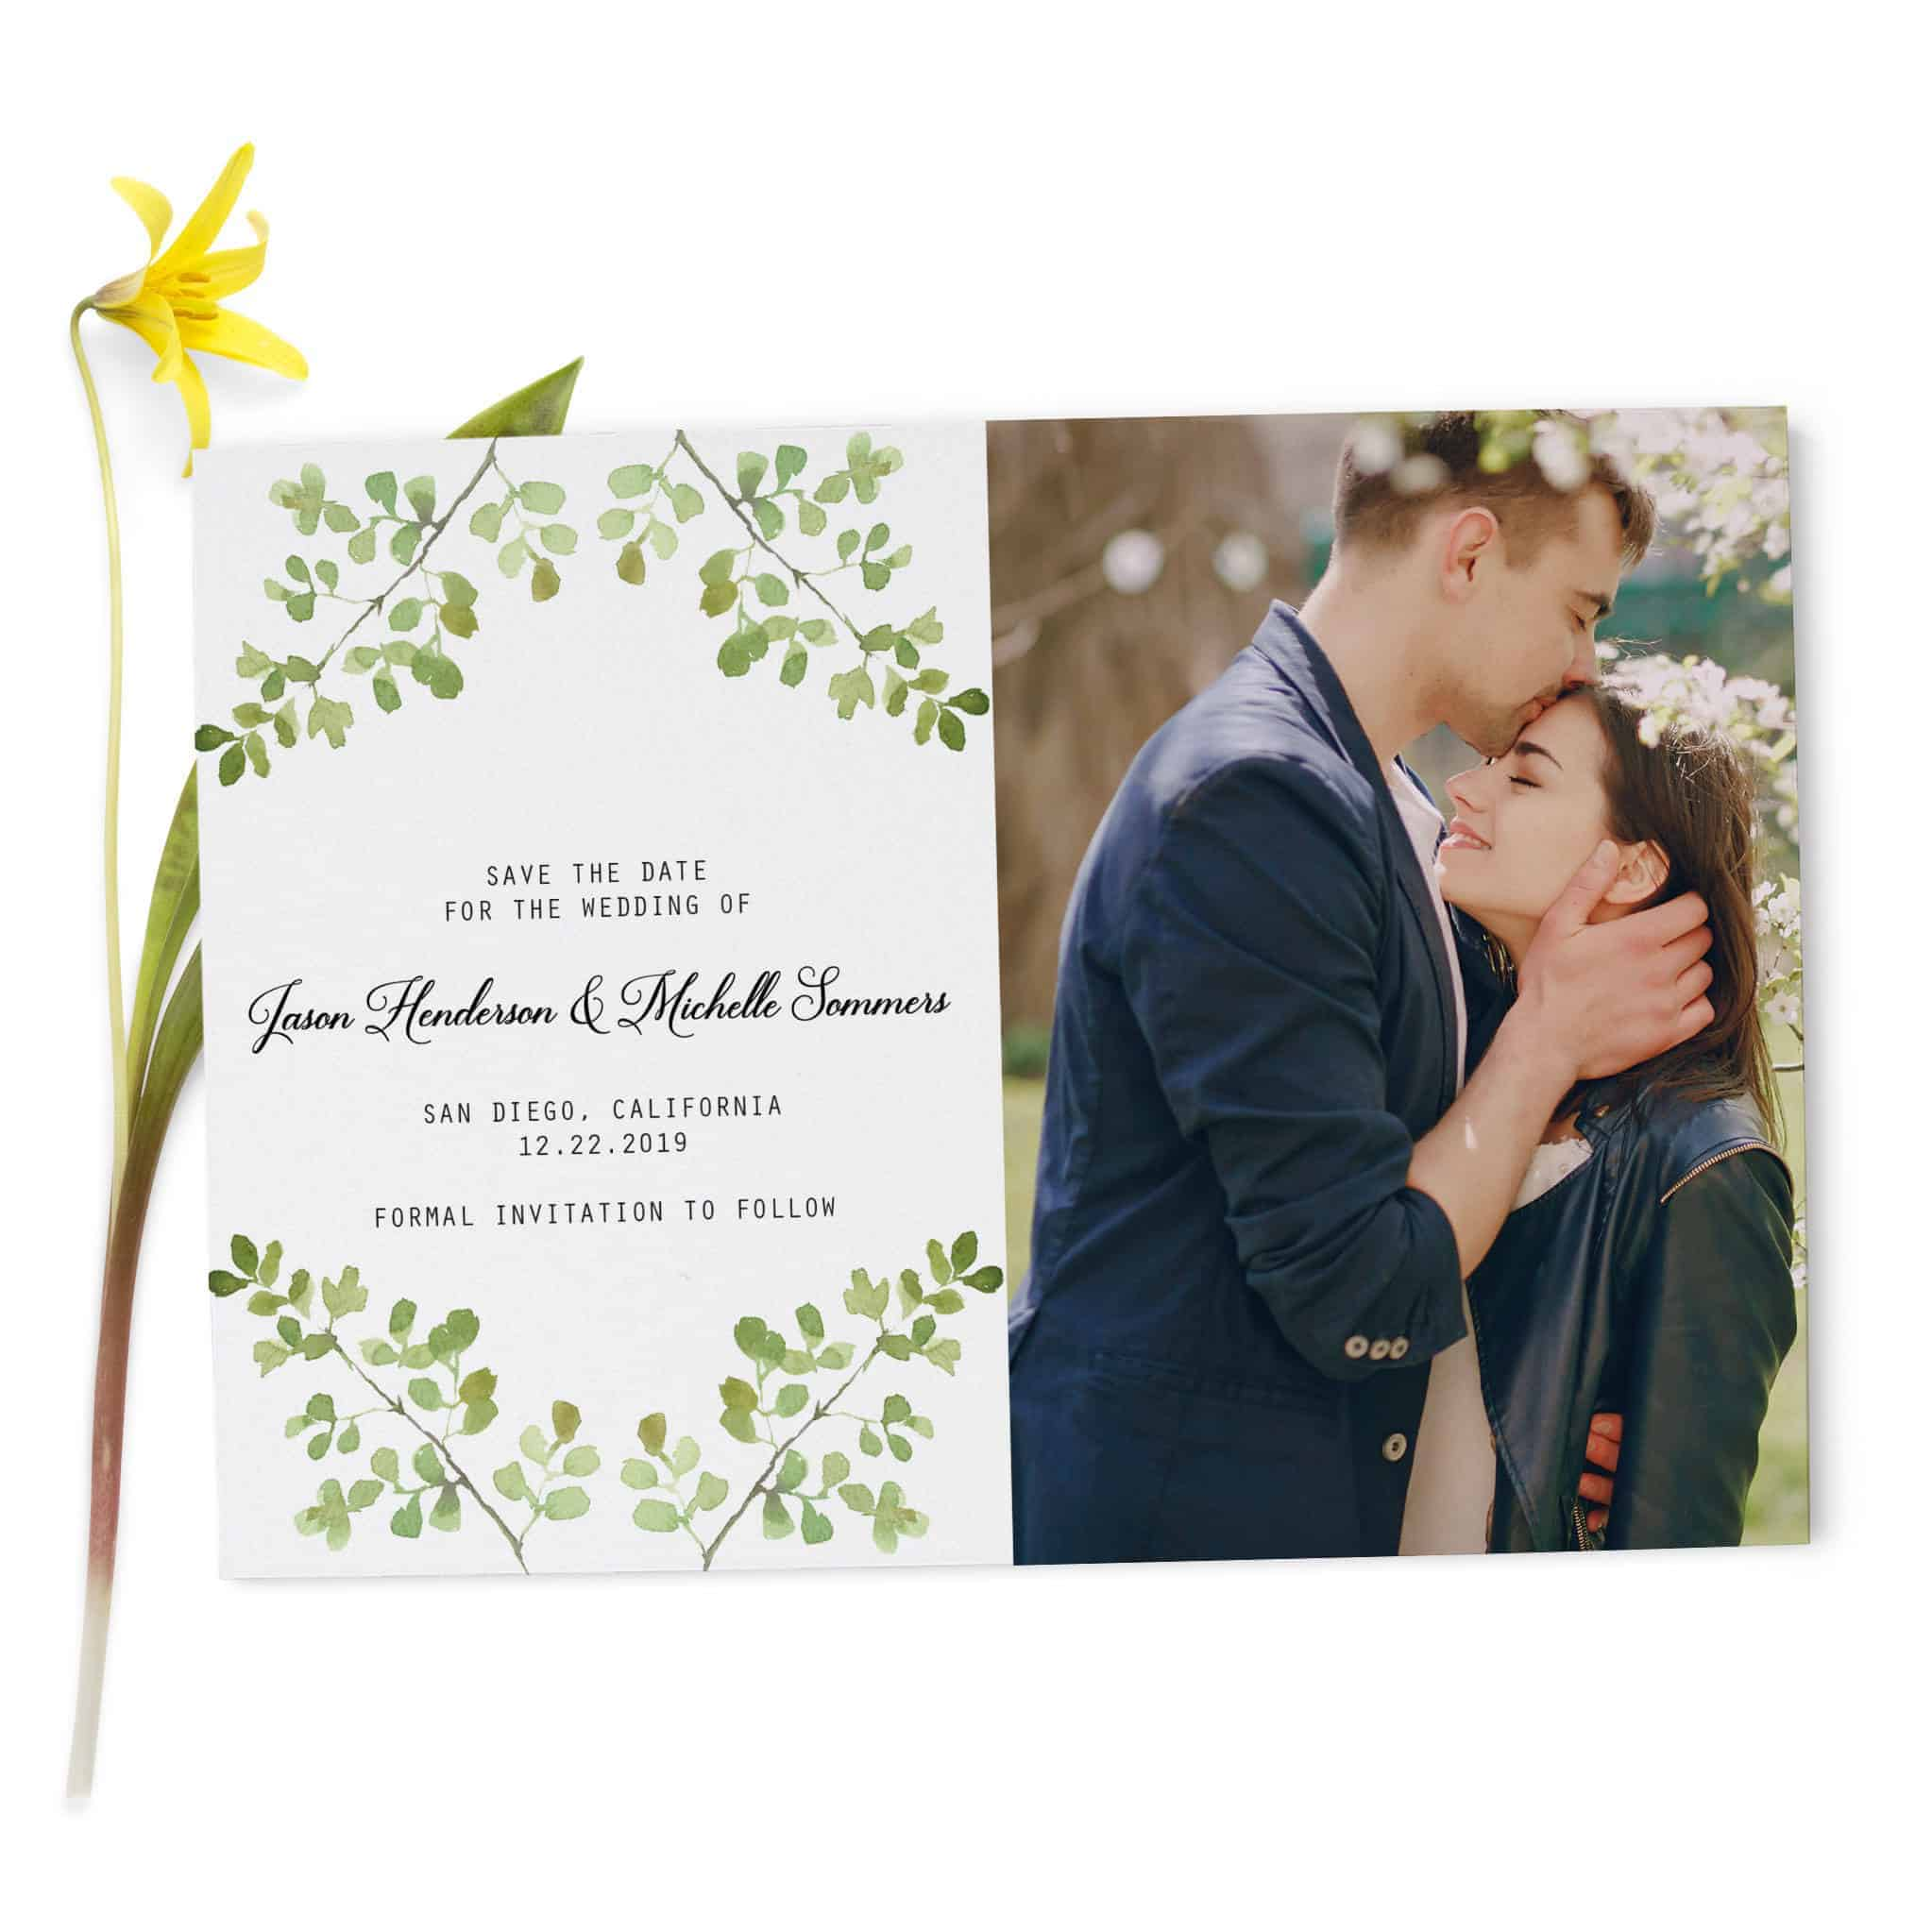 Green Wreath Save the Date Wedding Card, With Photo, Simple and Classic Wedding Card